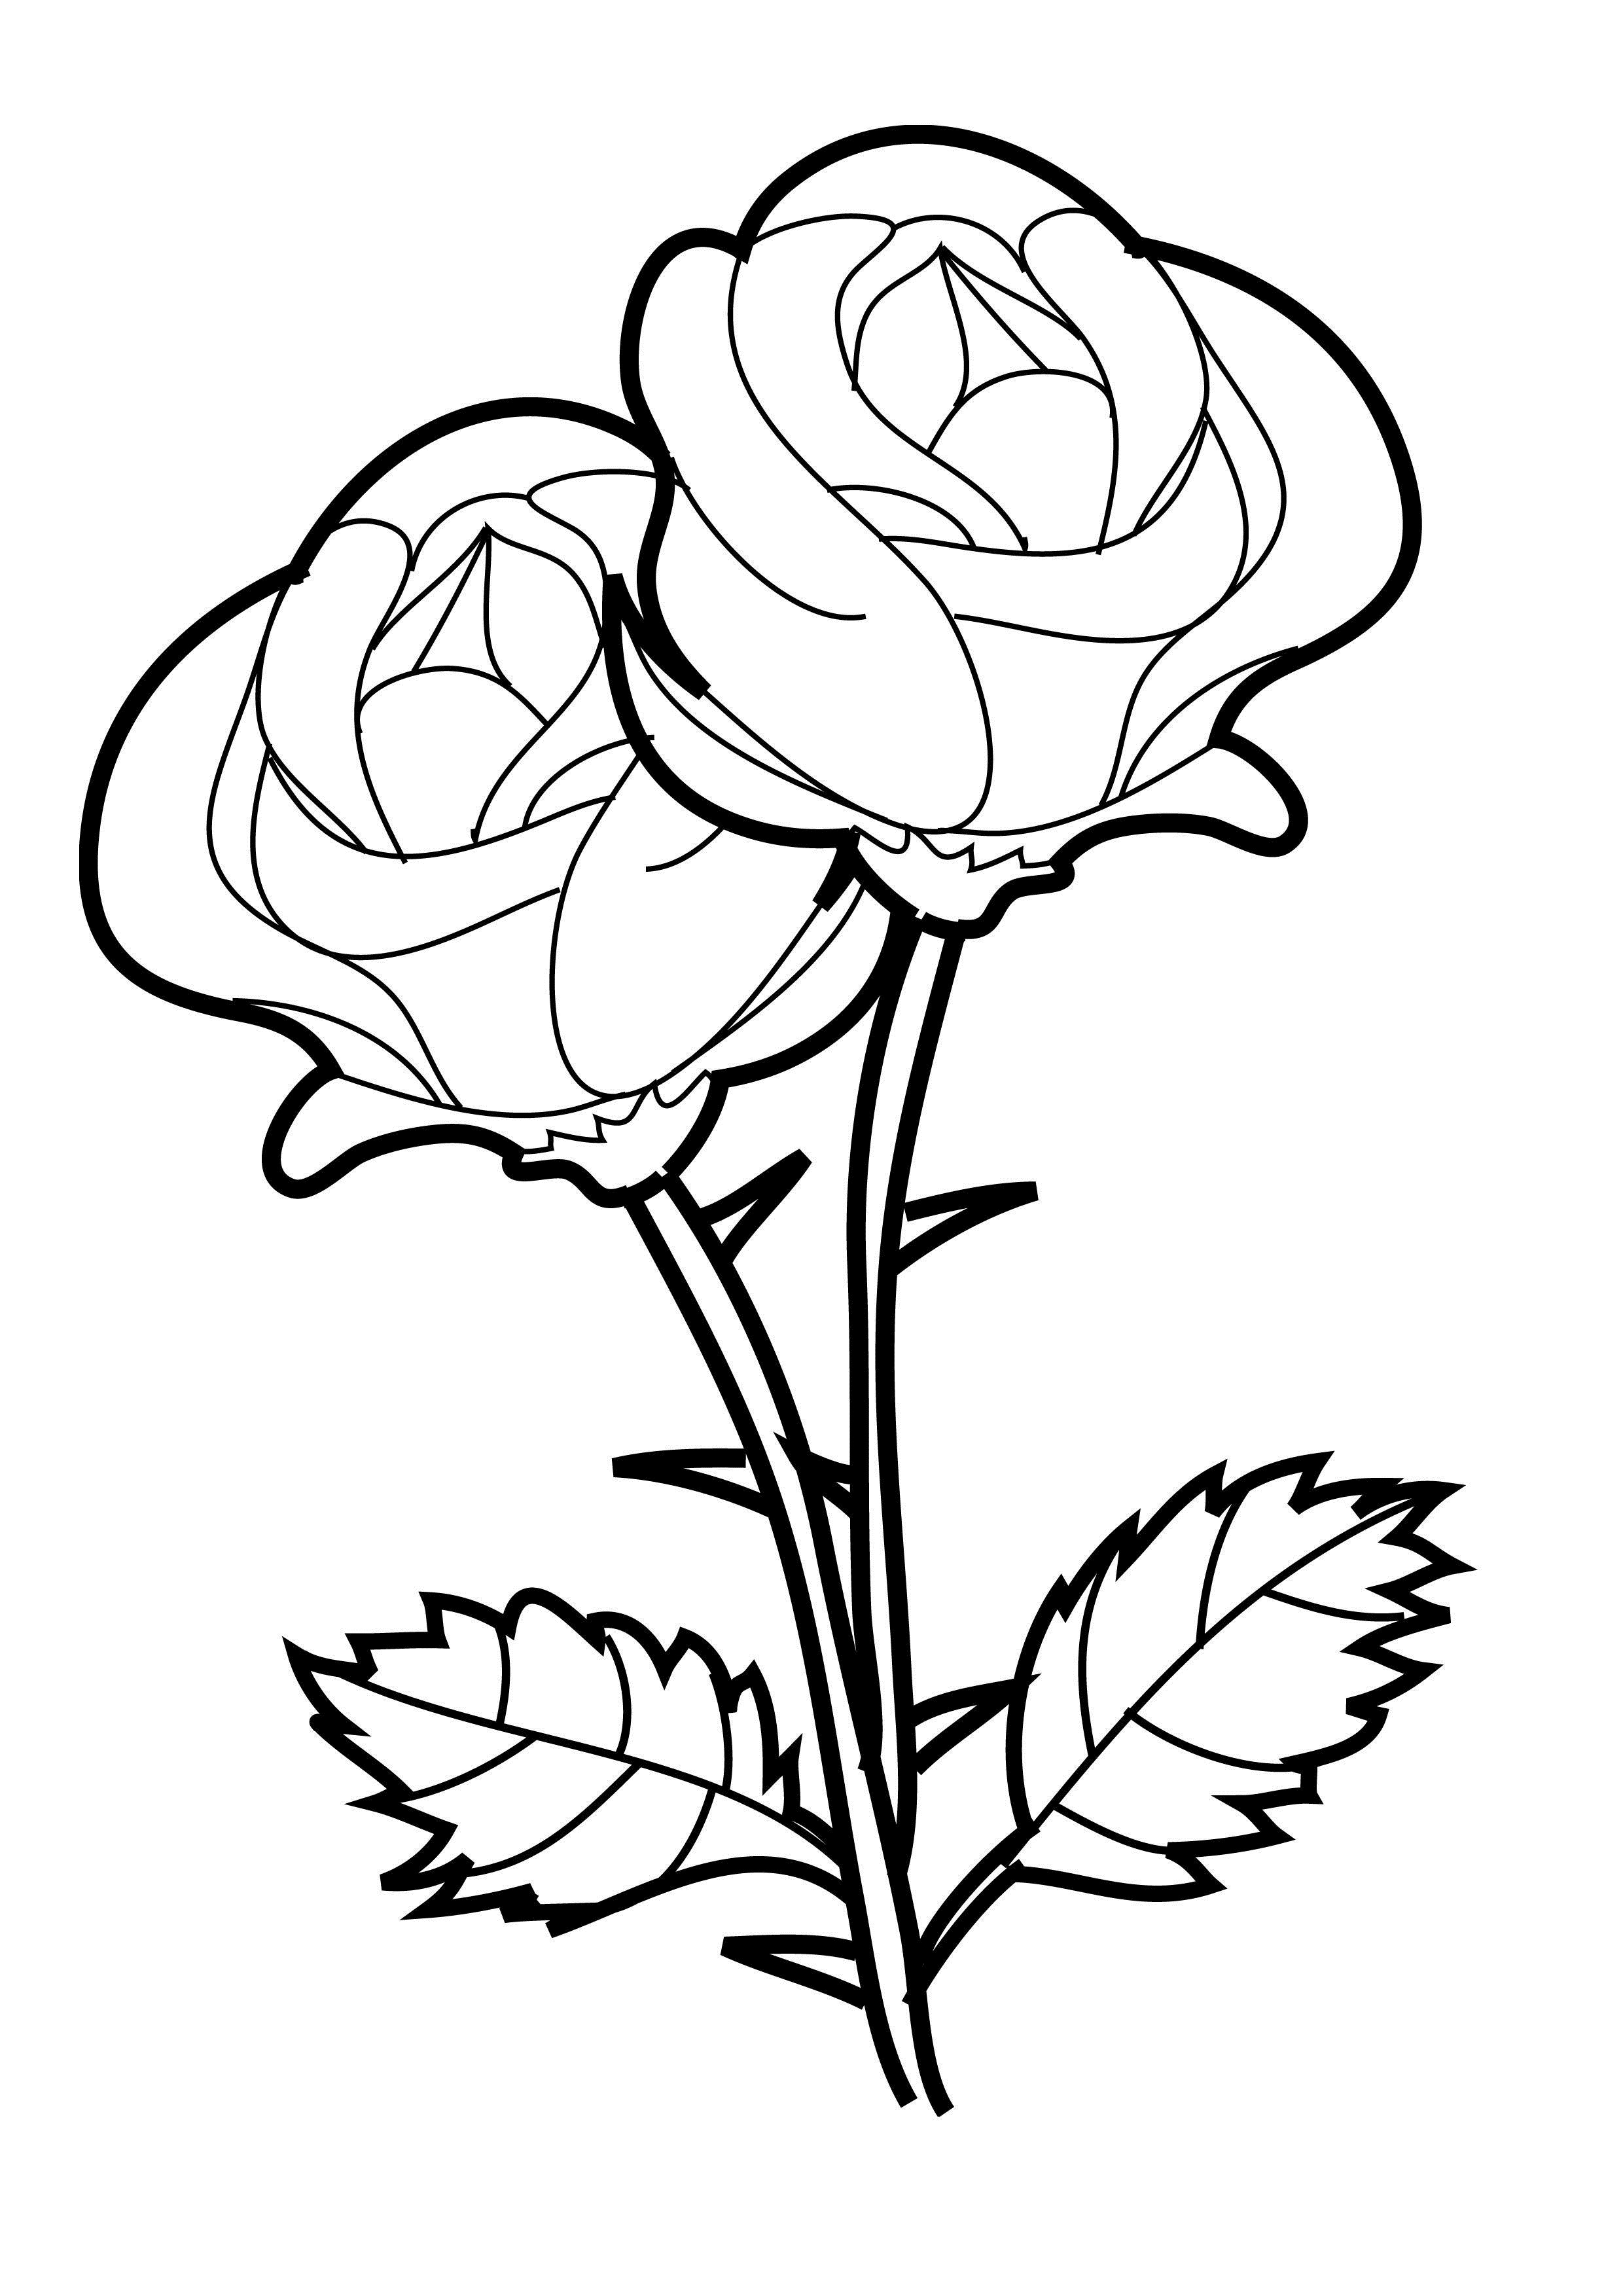 coloring book rose rose coloring page free printable coloring pages coloring book rose